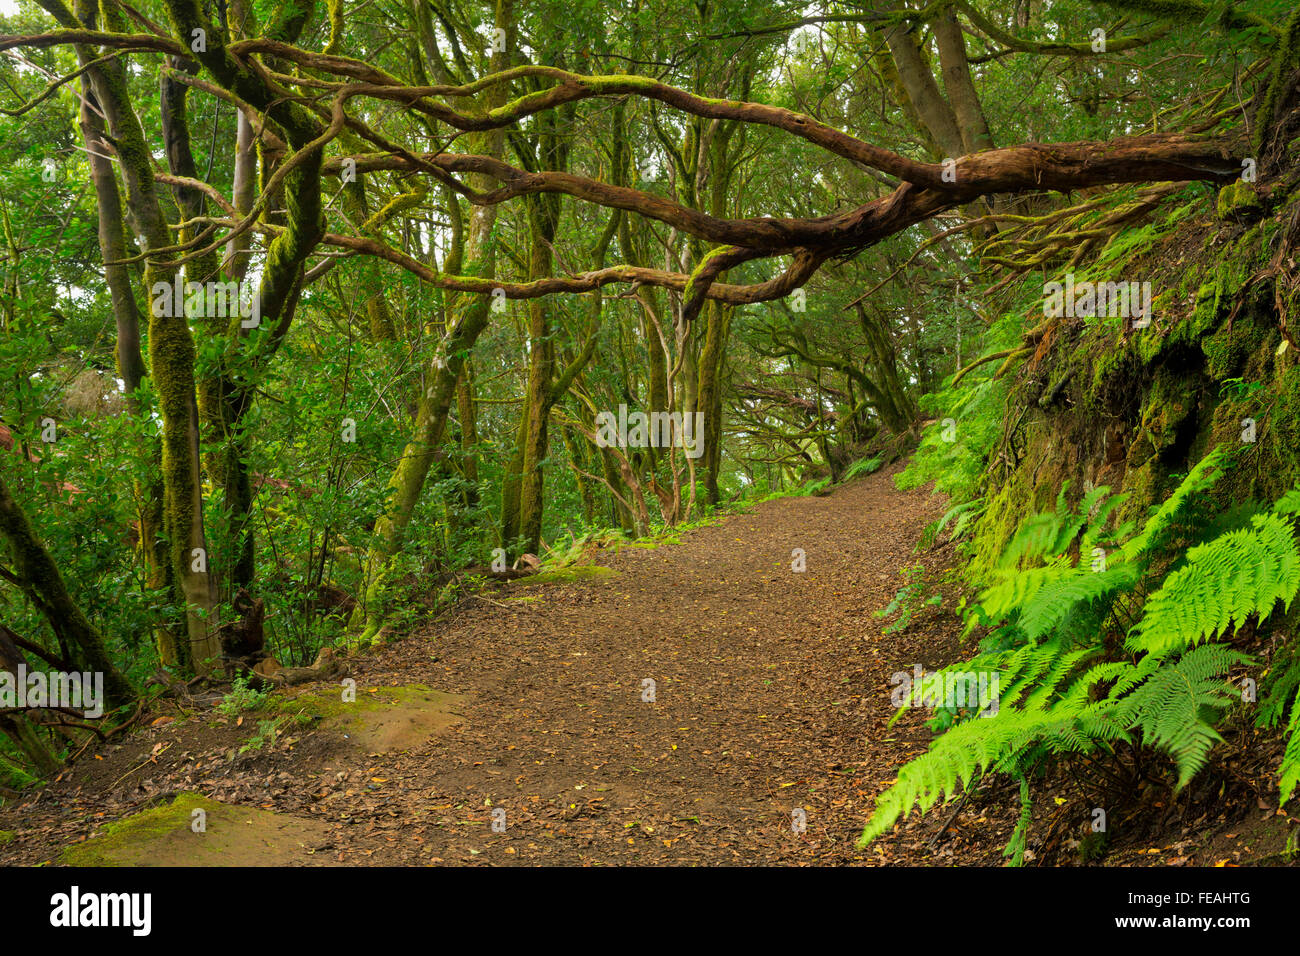 Laurel forest in the Anaga Mountains on Tenerife, Canary Islands, Spain. - Stock Image